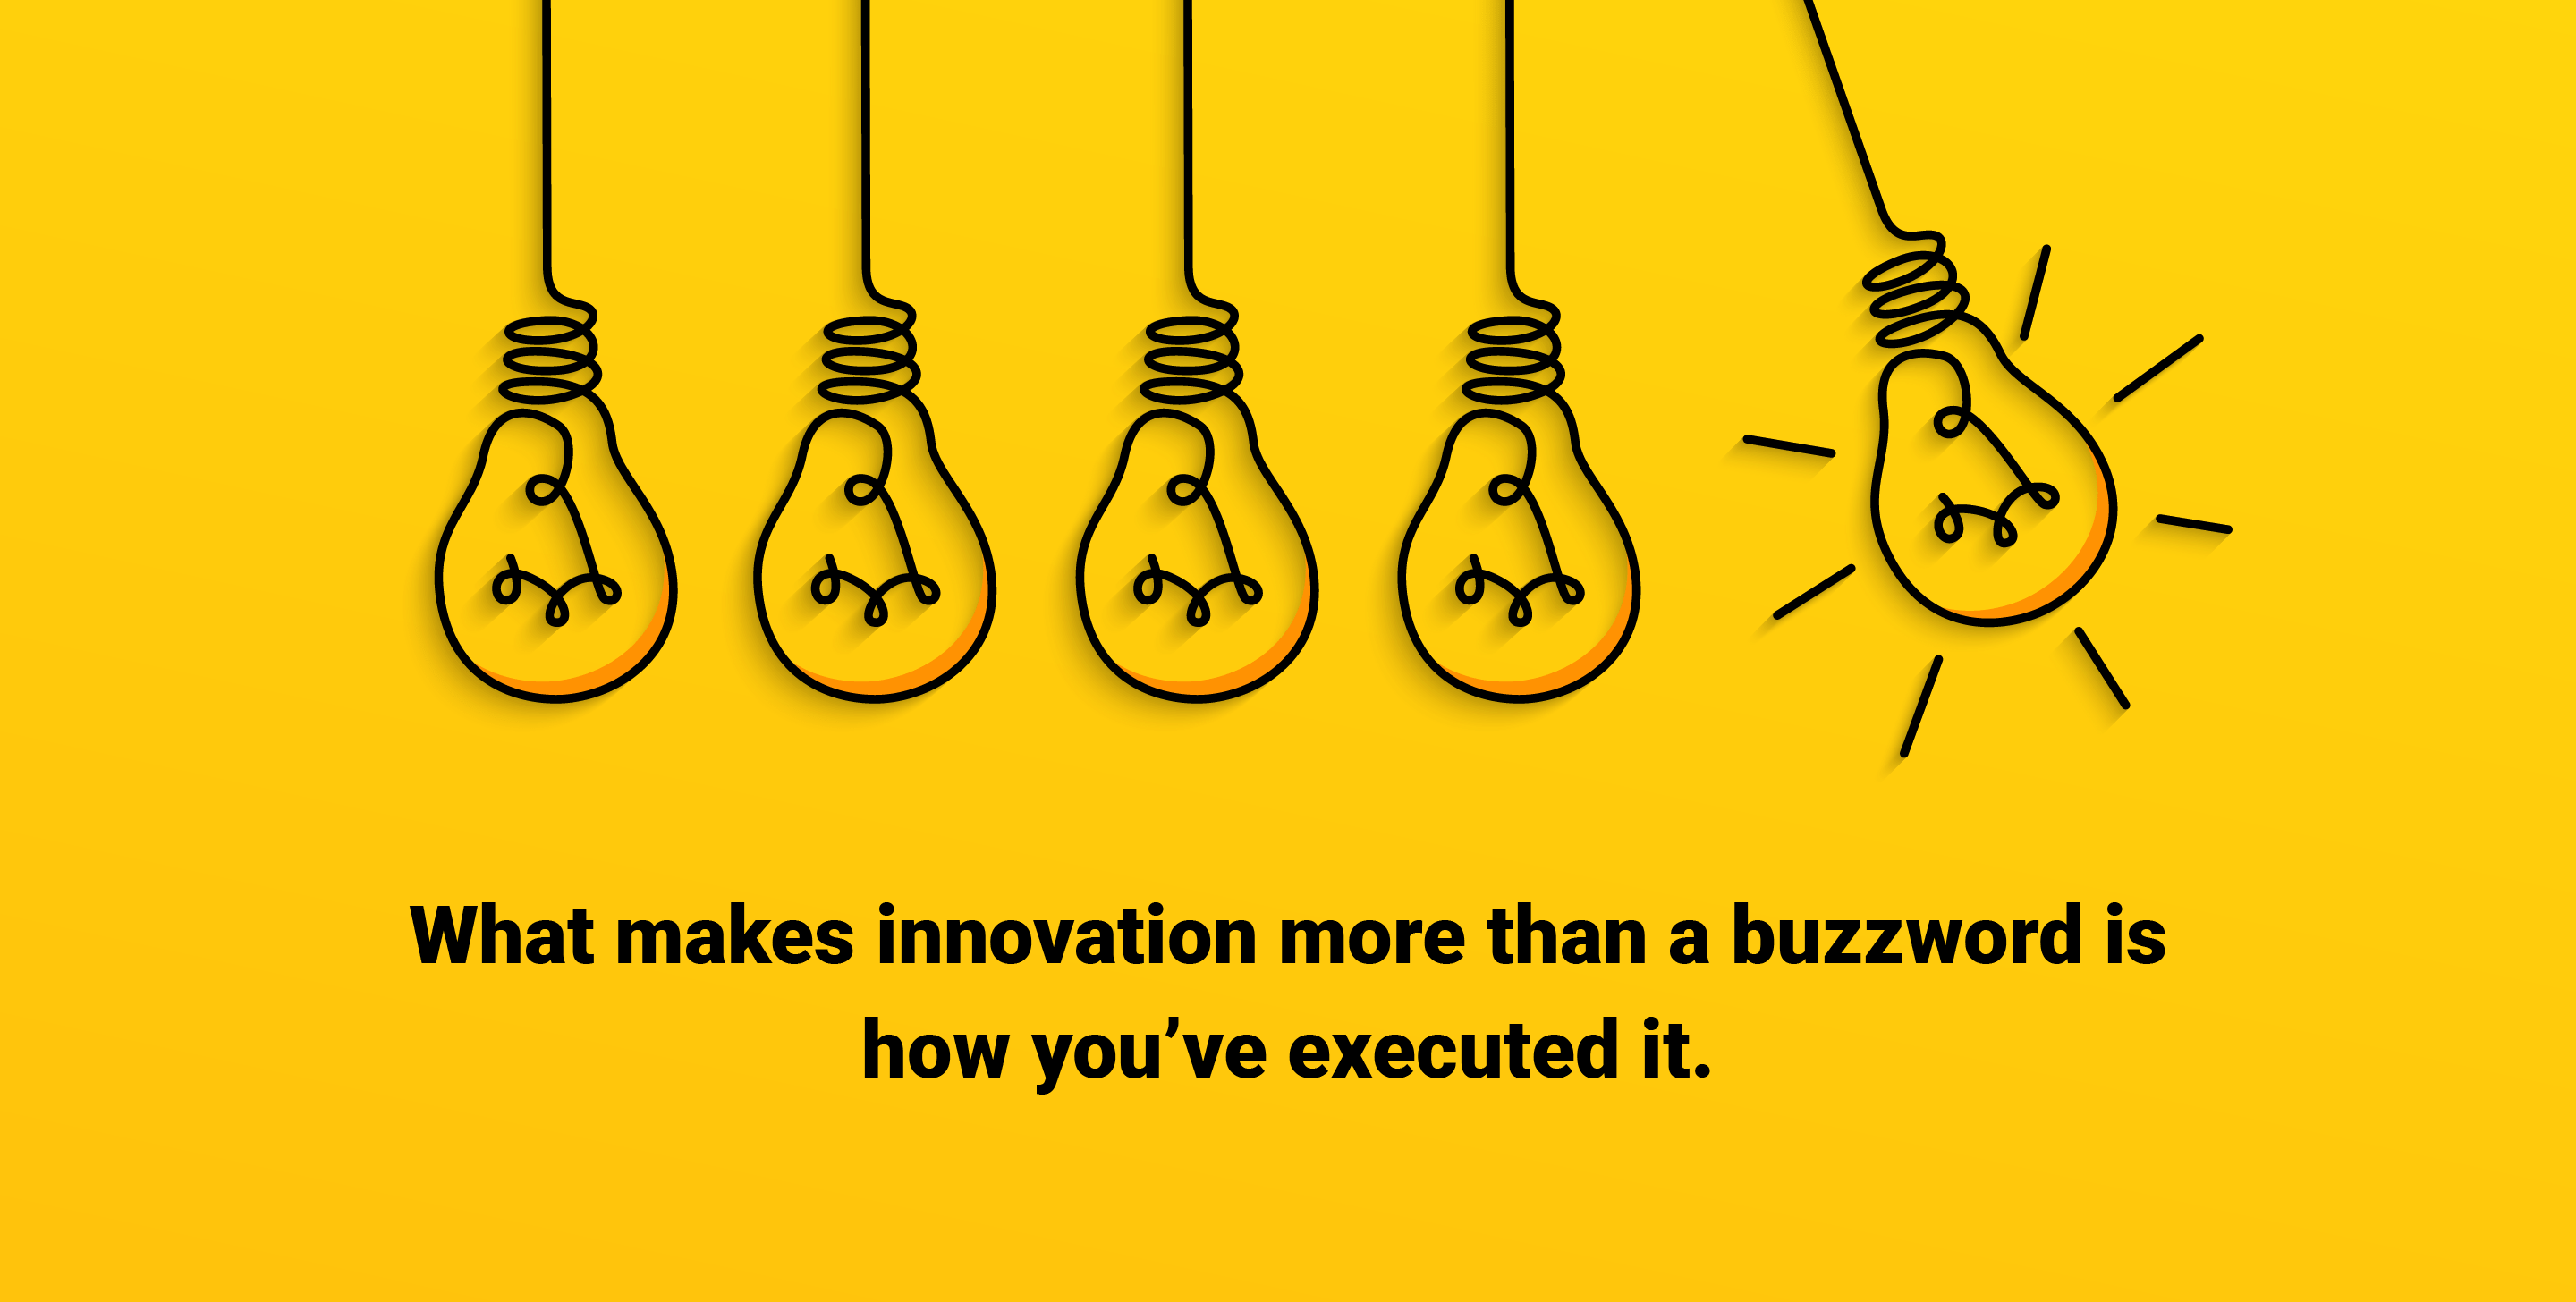 What makes innovation more than a buzzword is how you've executed it.